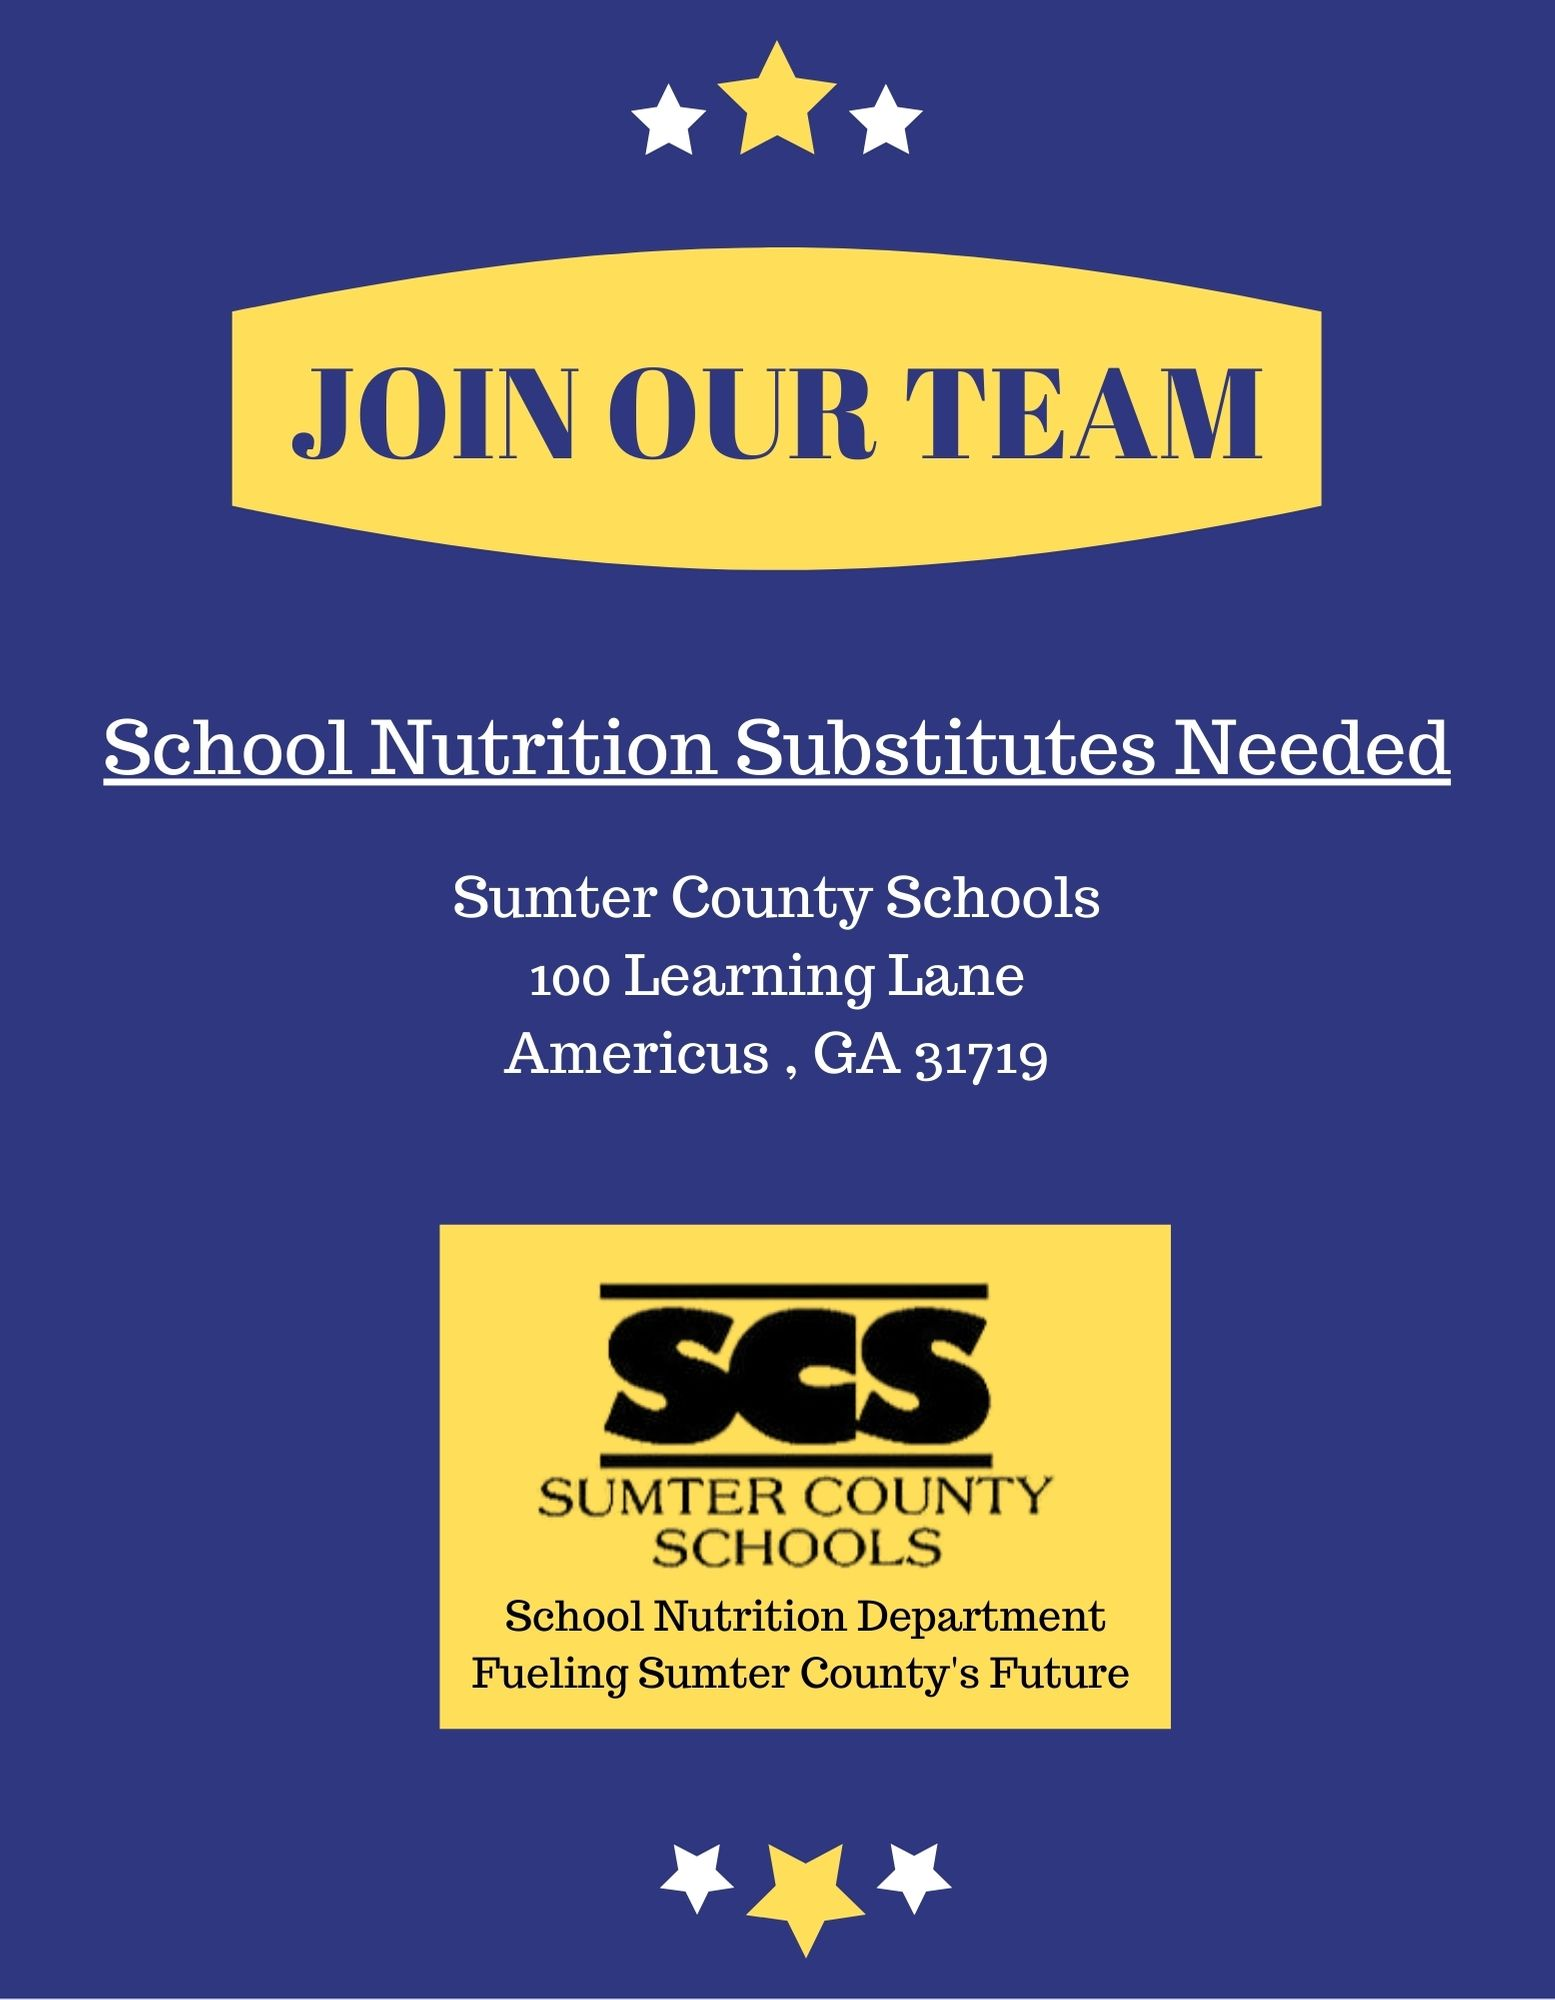 School Nutrition Substitutes Needed